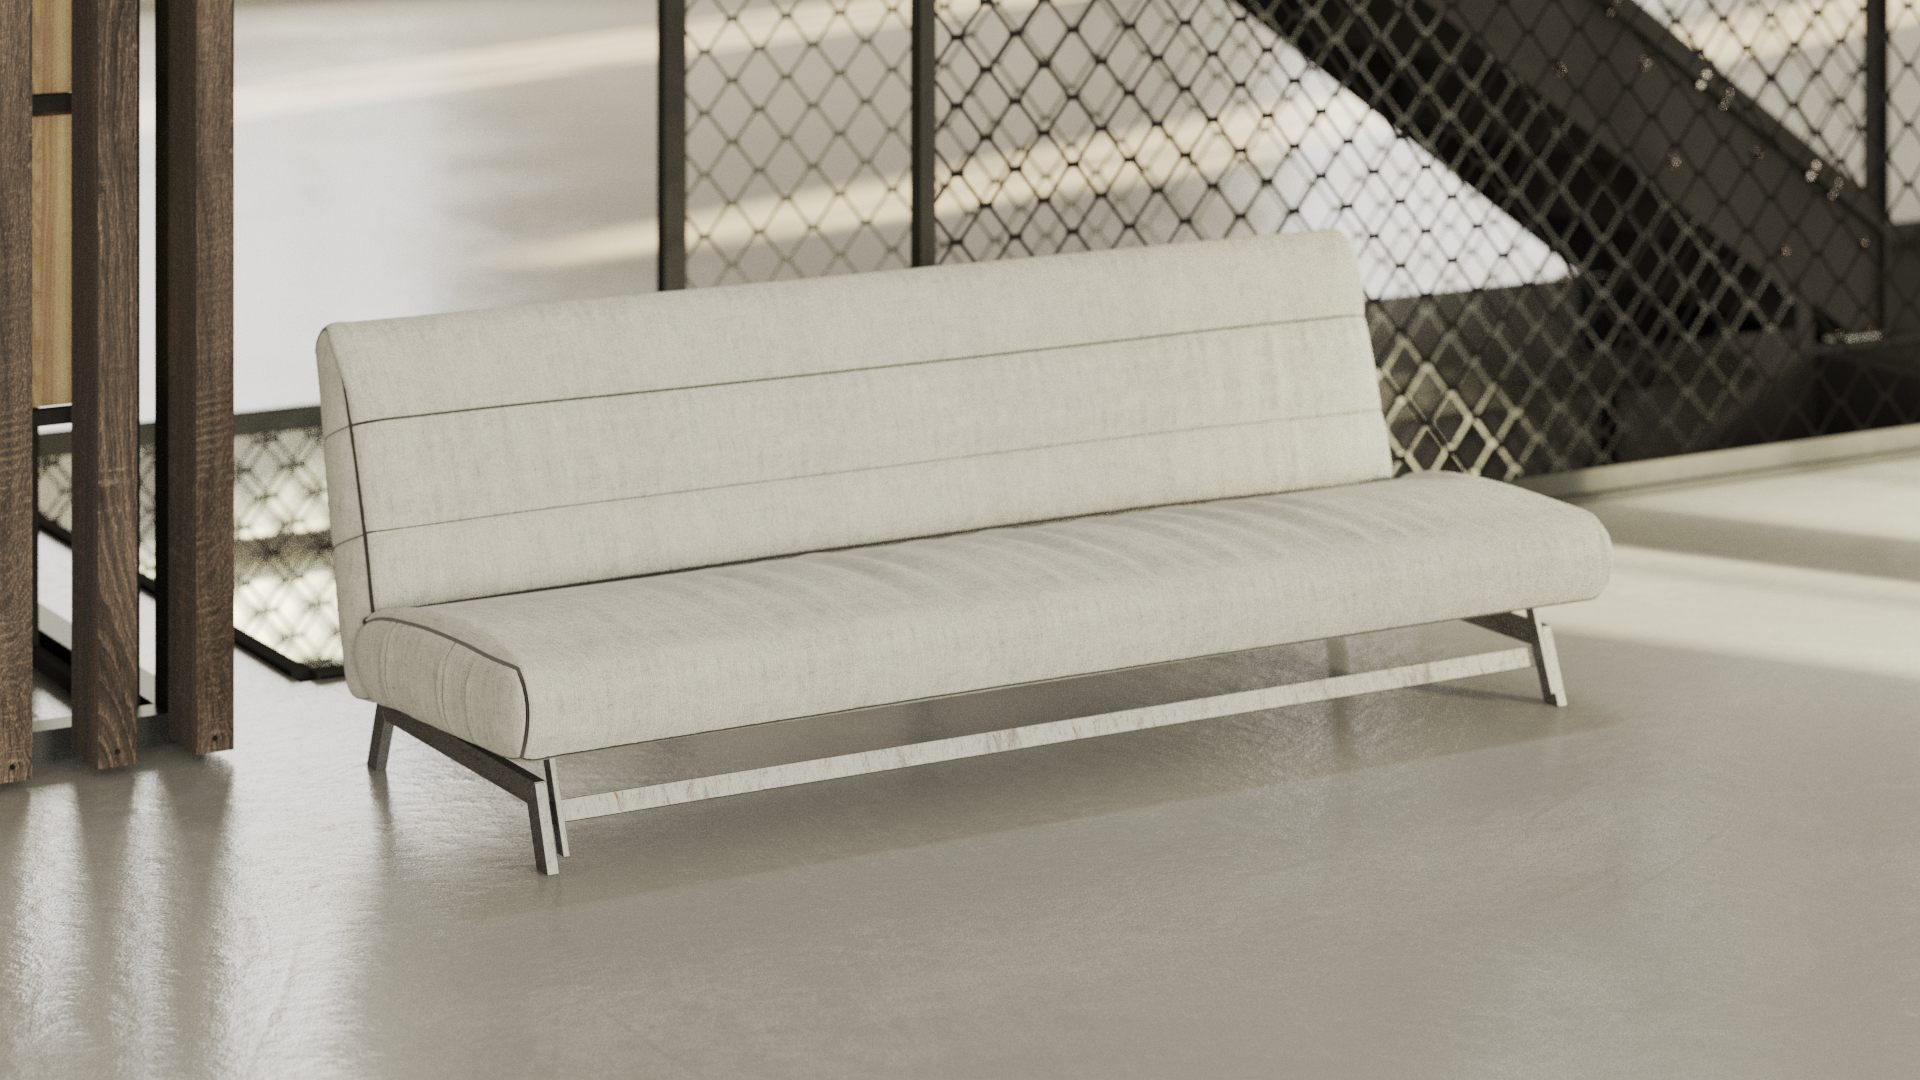 Awesome Ikea Karlaby Sofa Flyingarchitecture Pabps2019 Chair Design Images Pabps2019Com